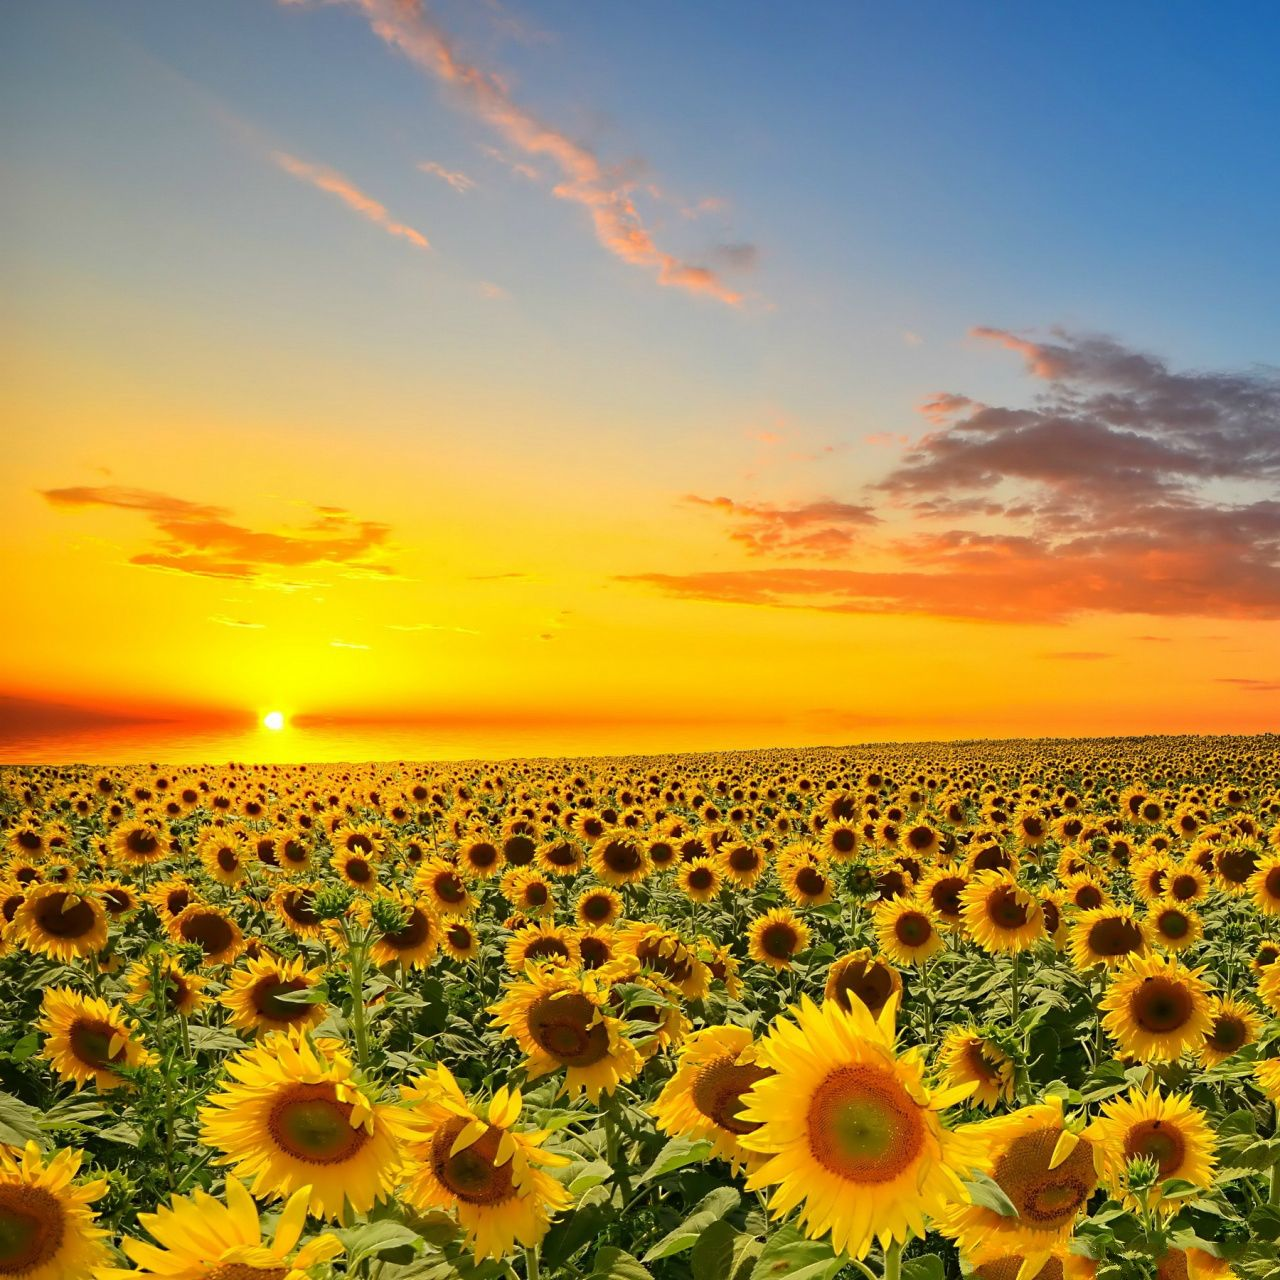 Sunset Over Sun Flowers Field IPad Wallpaper